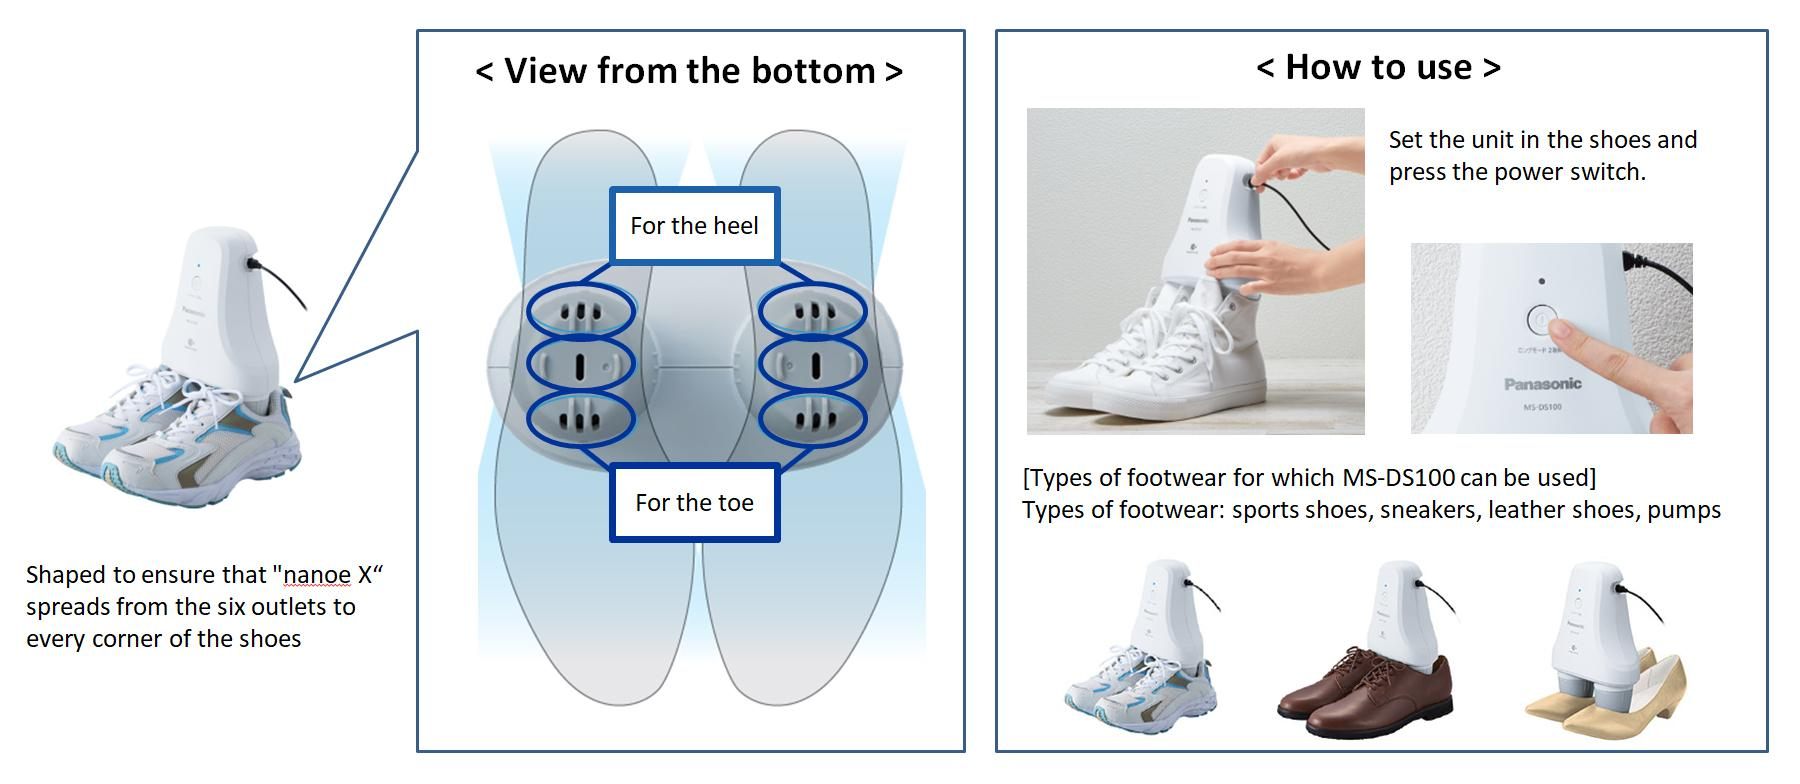 figure: Shoe deodorizer MS-DS100